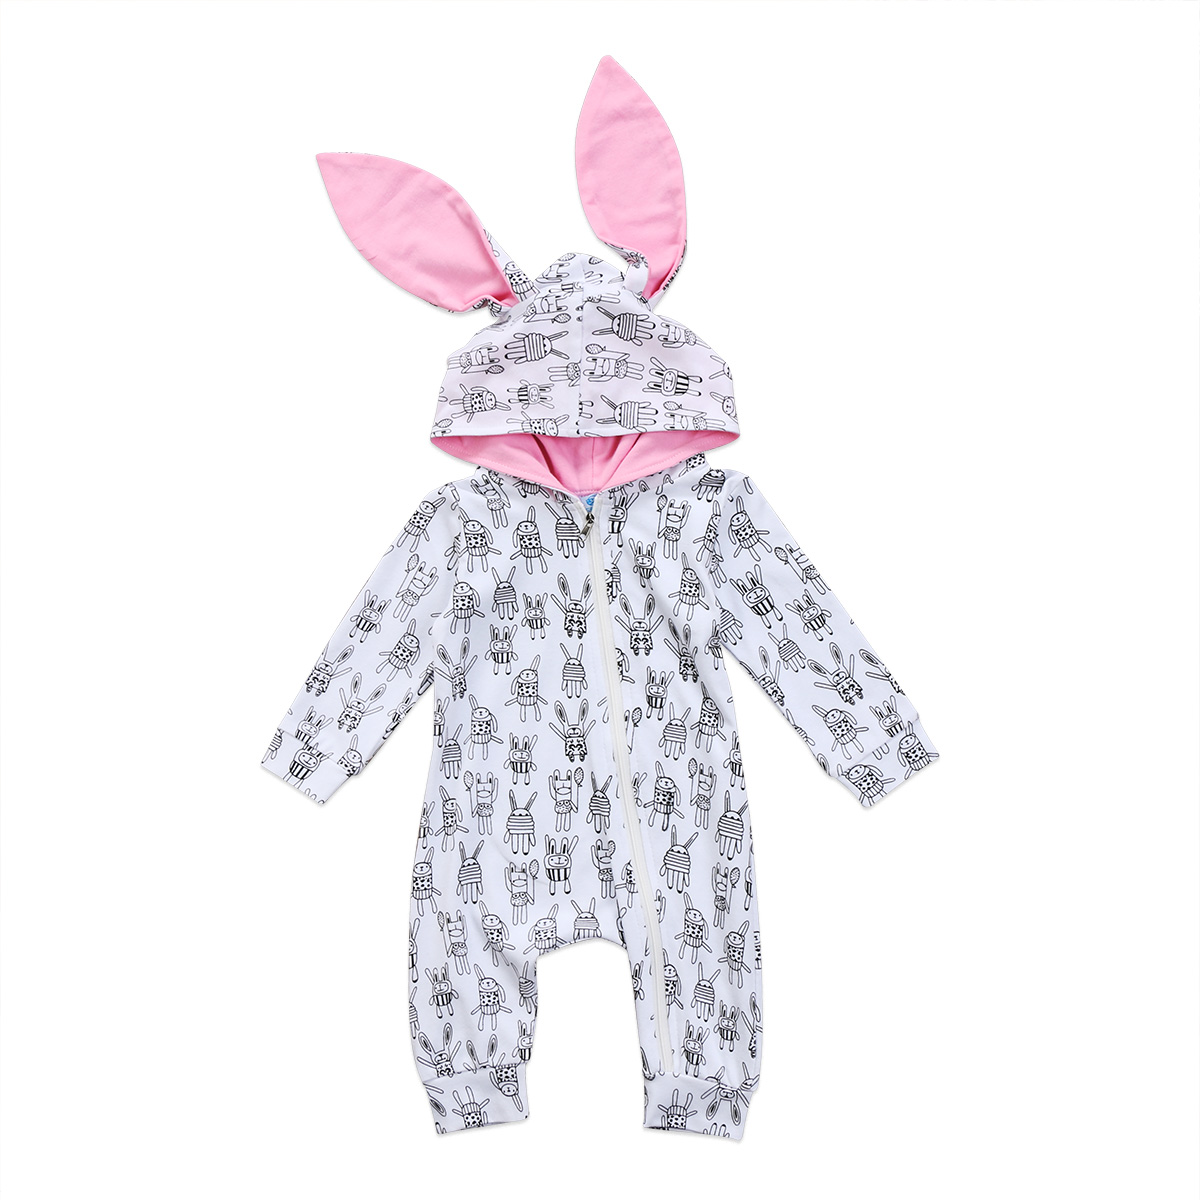 feb160d0545 Newborn Baby Long Sleeve Rompers Infant Girls Boys Cute Bunny Ears Jumpsuits  Toddler Cotton WInter Autumn